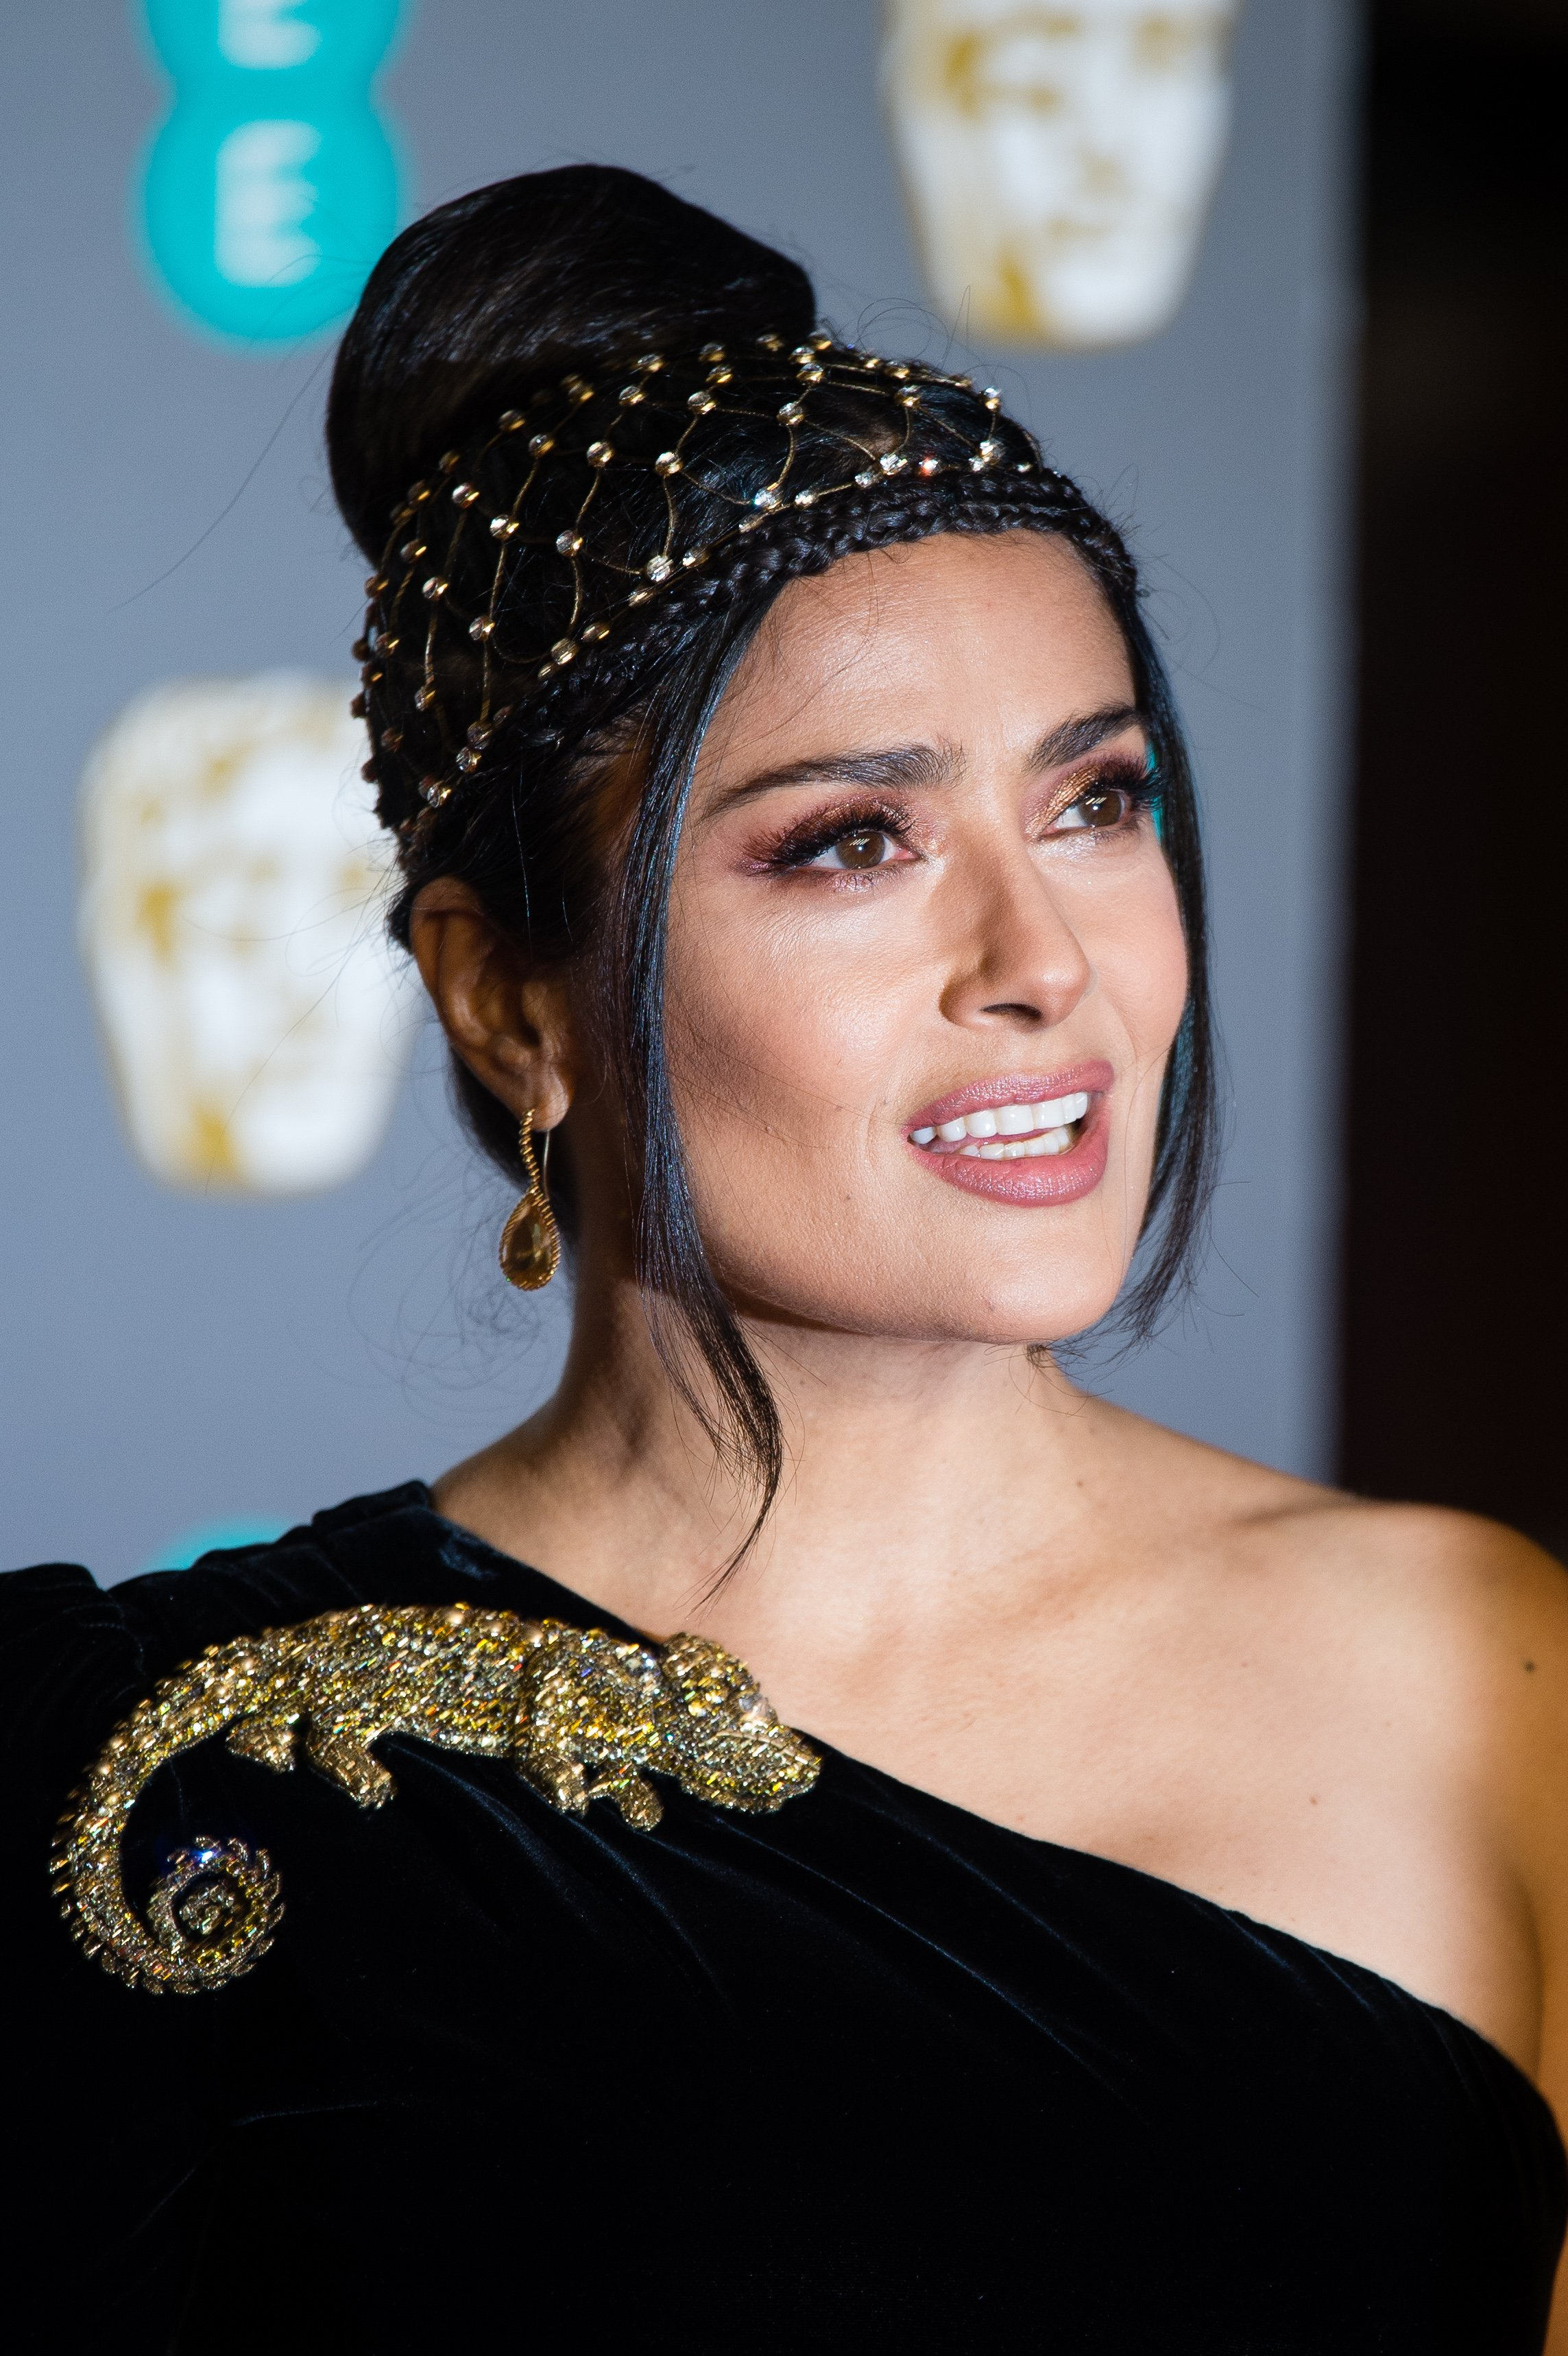 Salma Hayek attends the EE British Academy Film Awards in London, England on February 10, 2019 | Photo: Getty Images